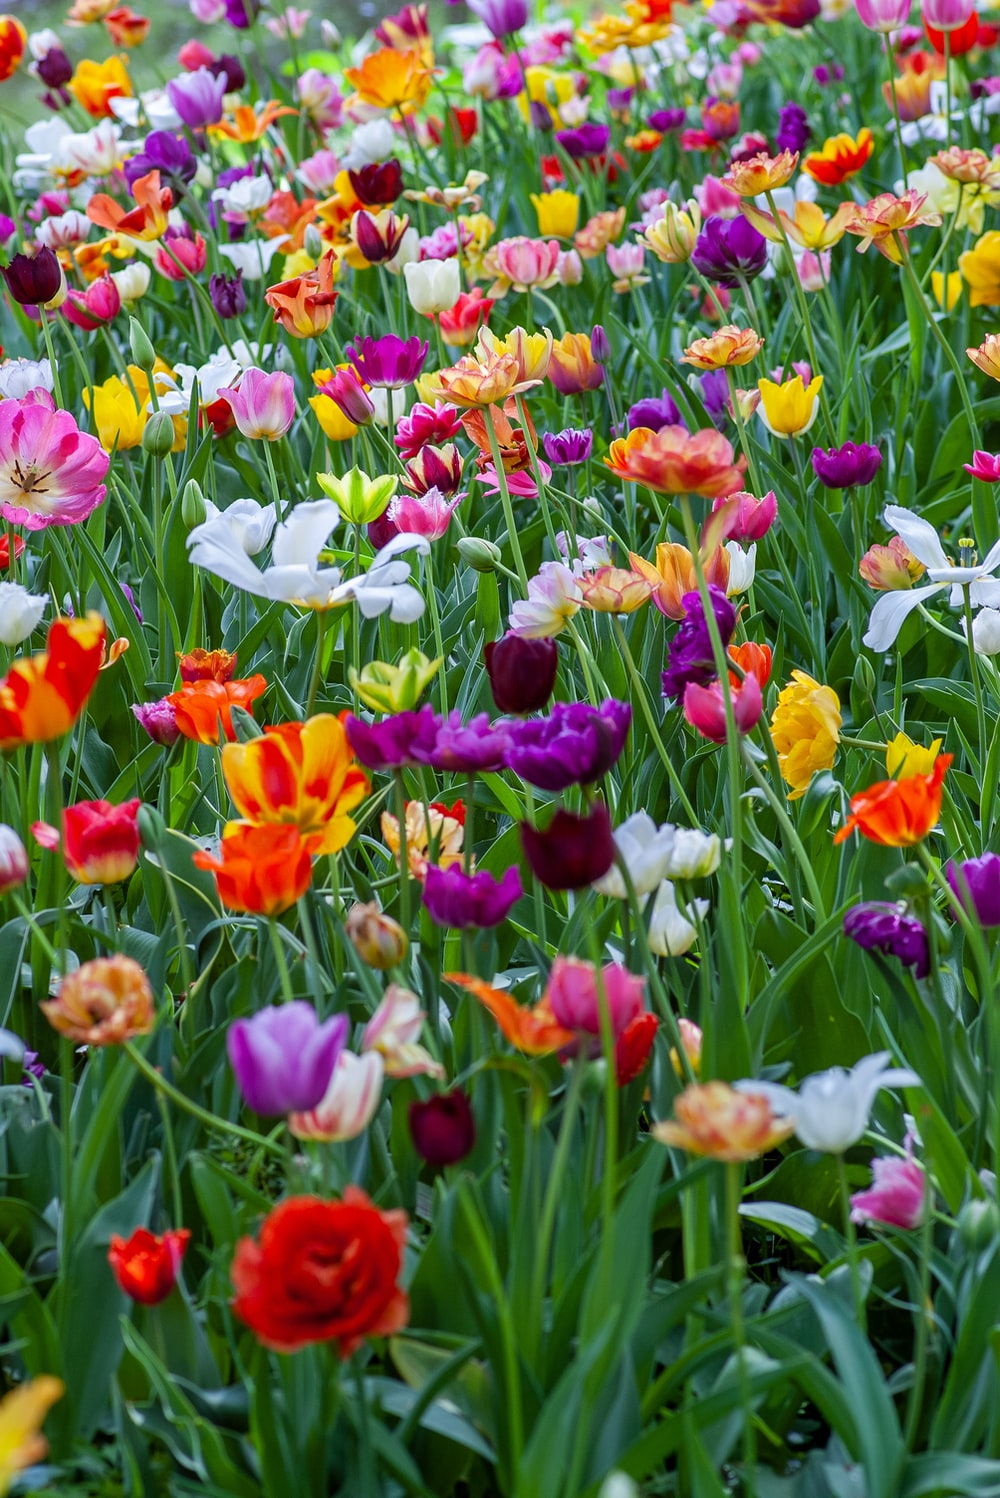 500 Spring Flowers Pictures  Download Free Images on Unsplash